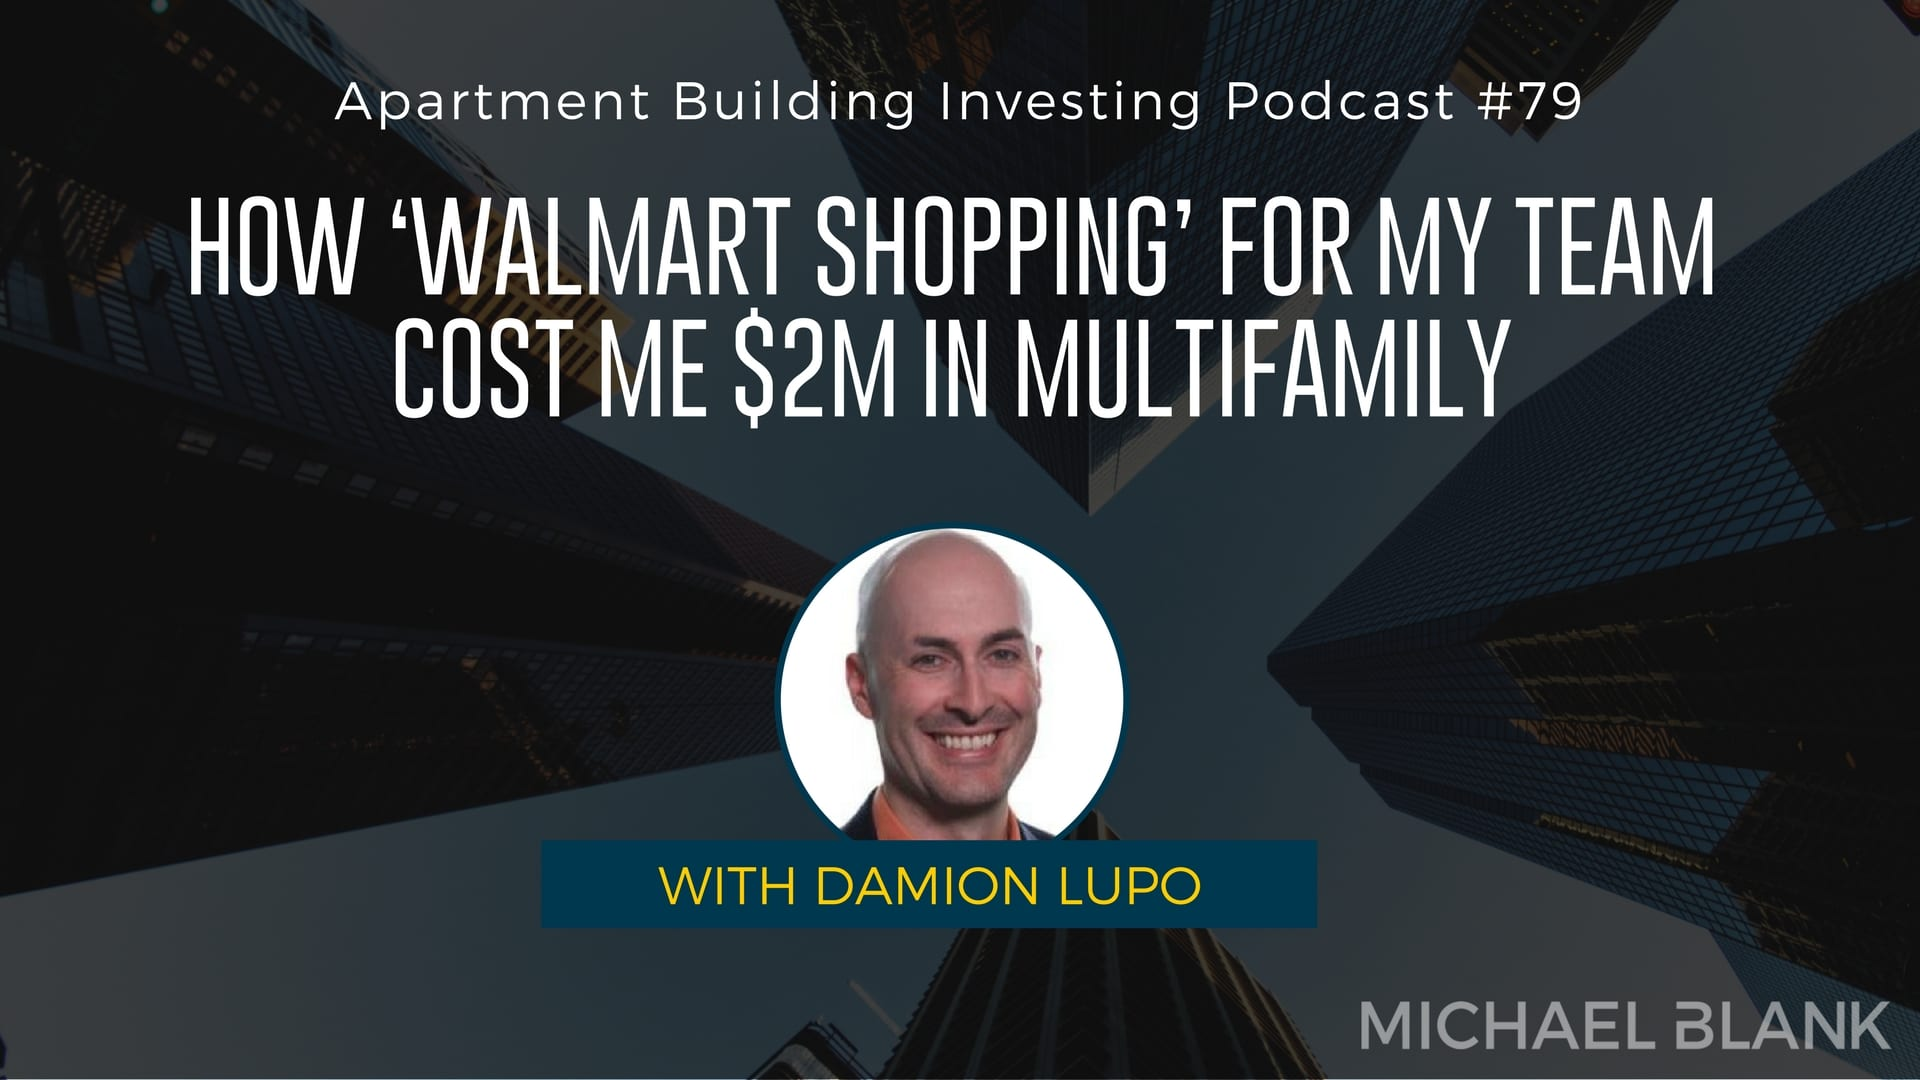 MB 079: How 'Walmart Shopping' for My Team Cost Me $2M in Multifamily – With Damion Lupo